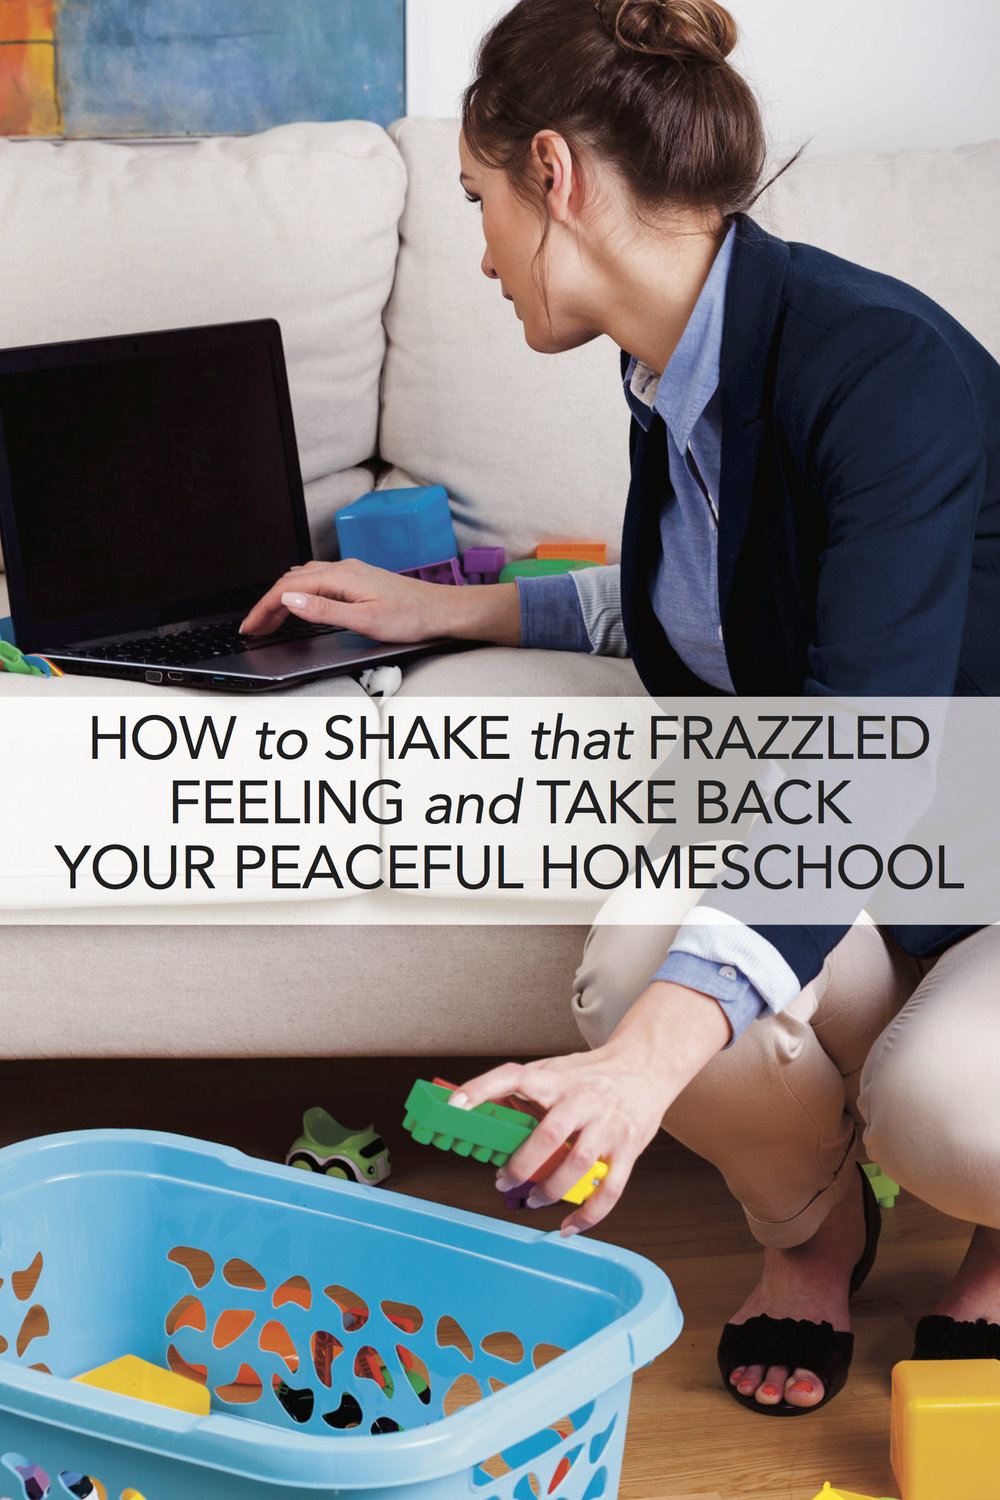 That harried, nagging busy-ness that plagues modern life can be especially hard on homeschool parents. Here's how to chill out, slow down, and stop feeling so scattered.